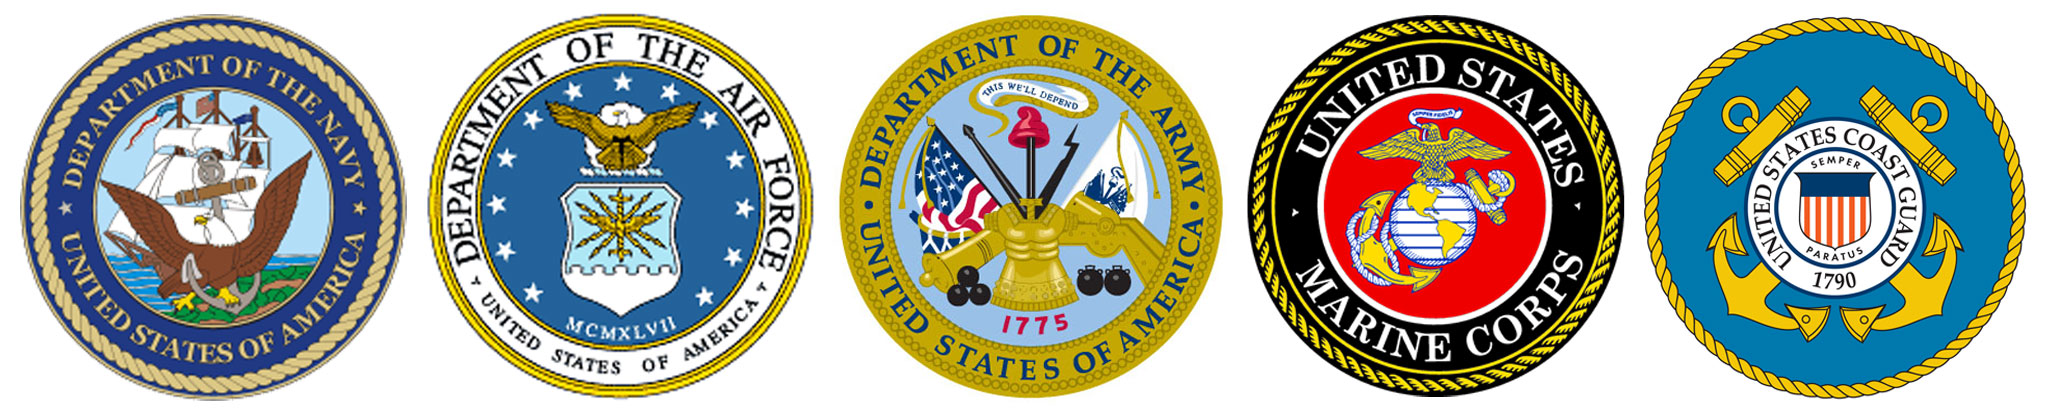 Armed forces seals clipart